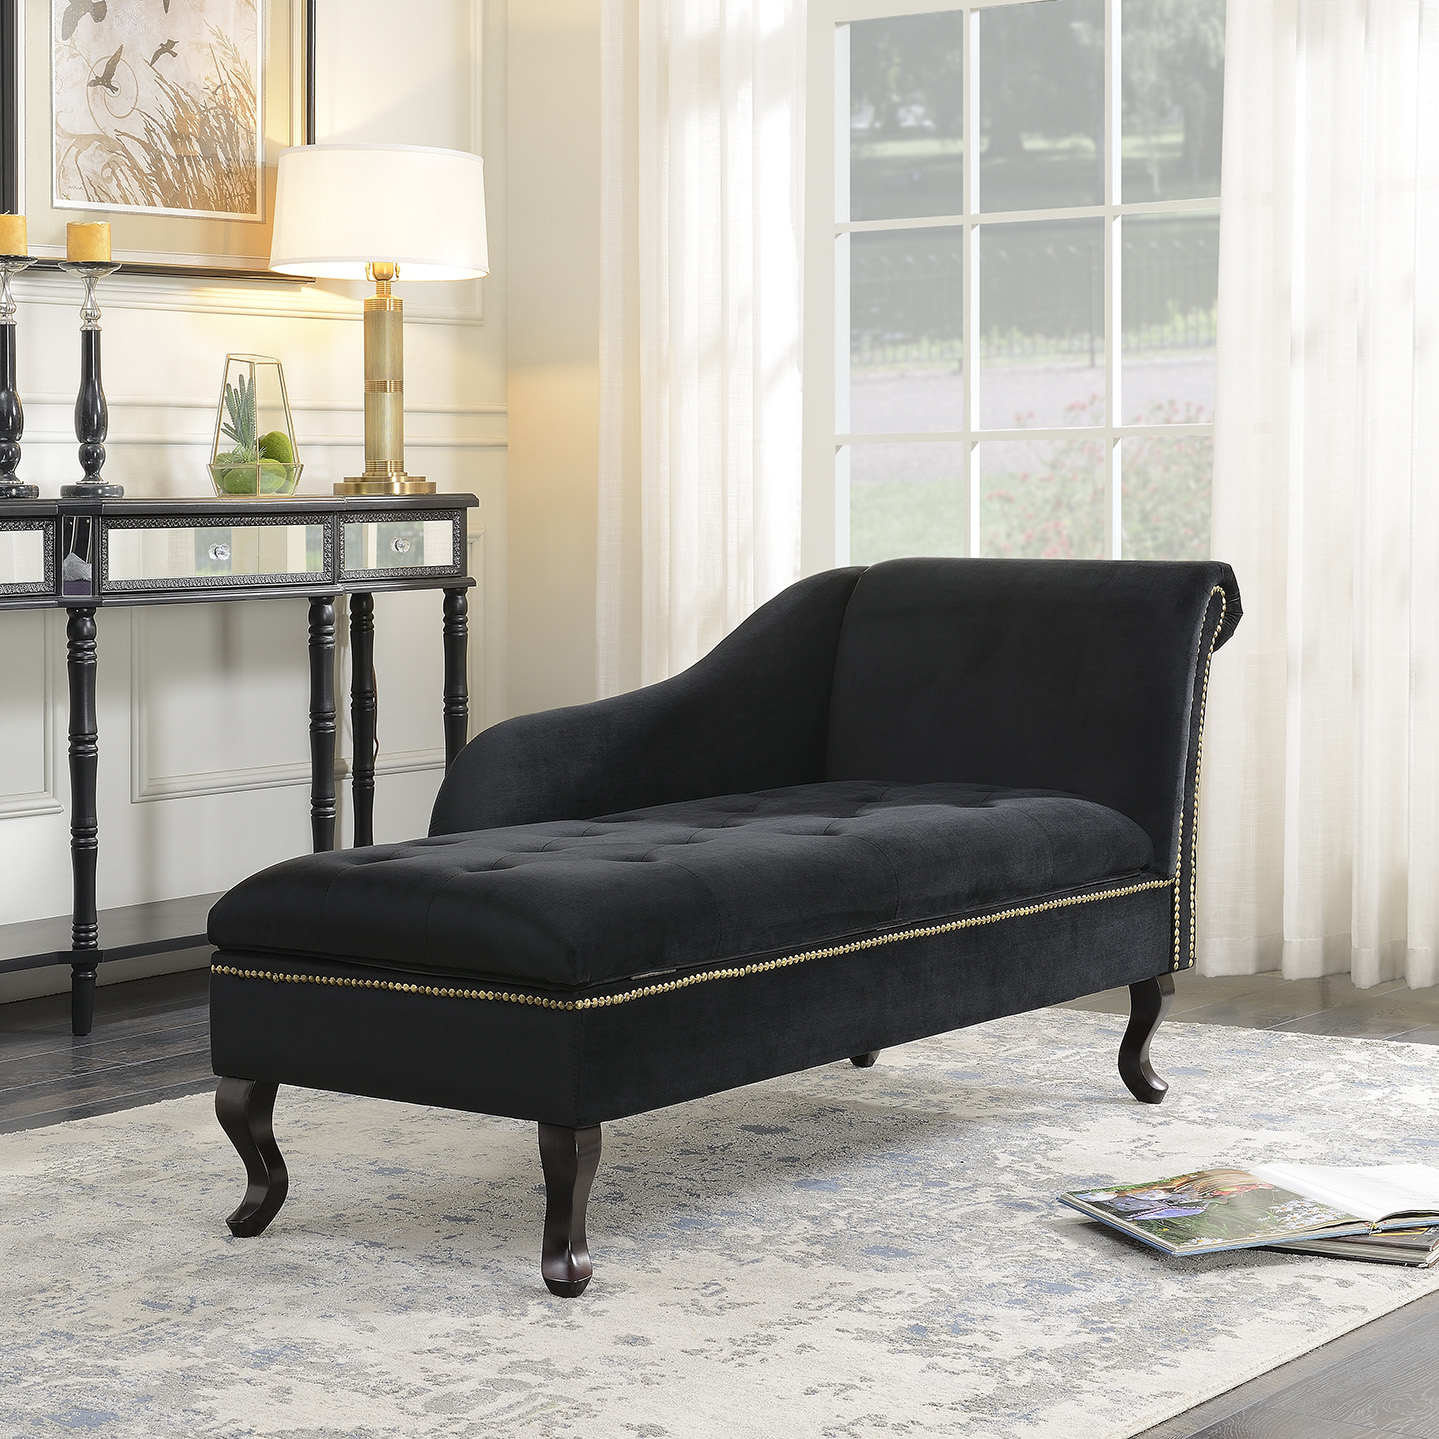 Velveteen Button Tufted Storage Chaise Lounge Chair Couch For Living Room,  Black